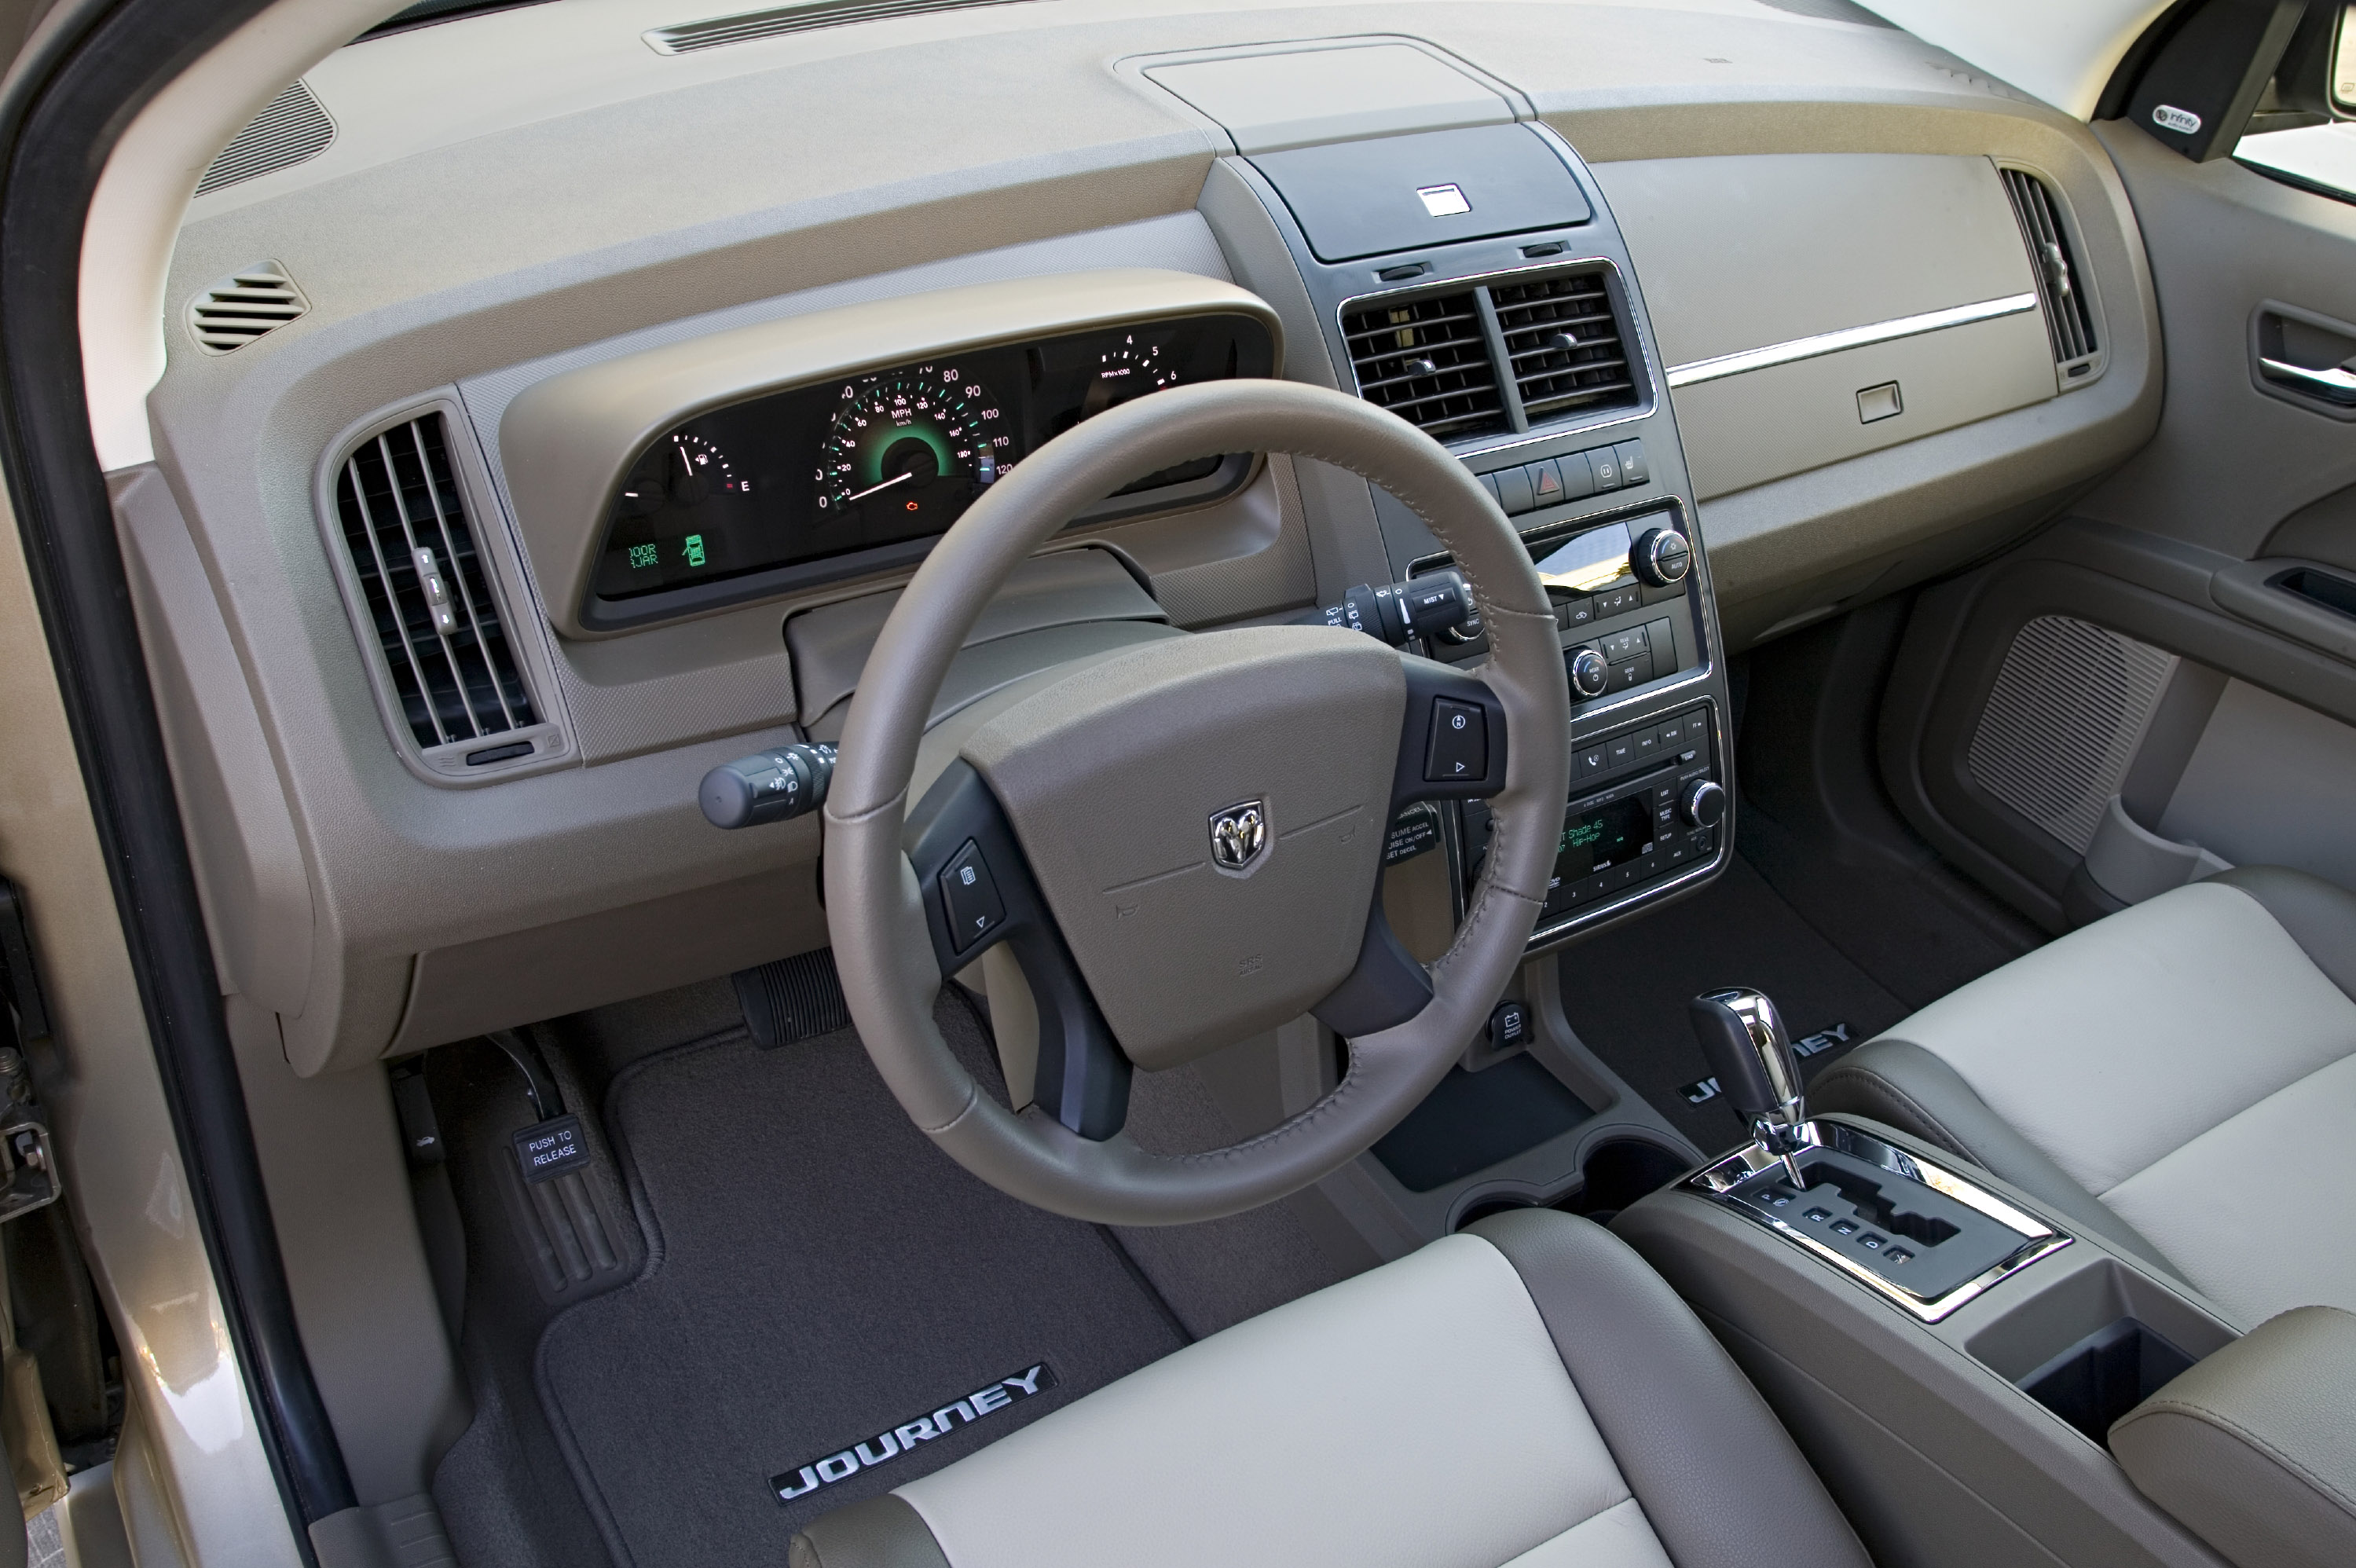 2009 Dodge Journey Interior Specs